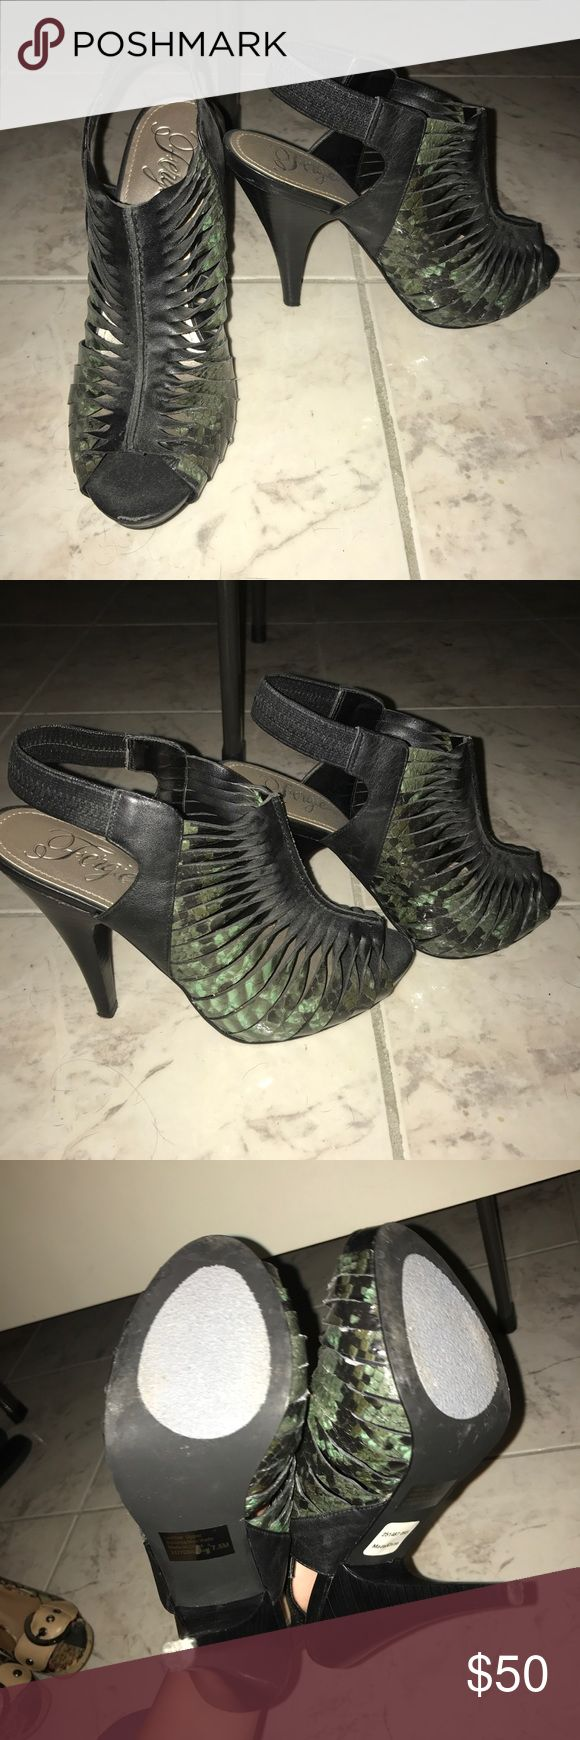 Size 7.5 fergie shoes Only worn around the house Fergie Shoes Heels